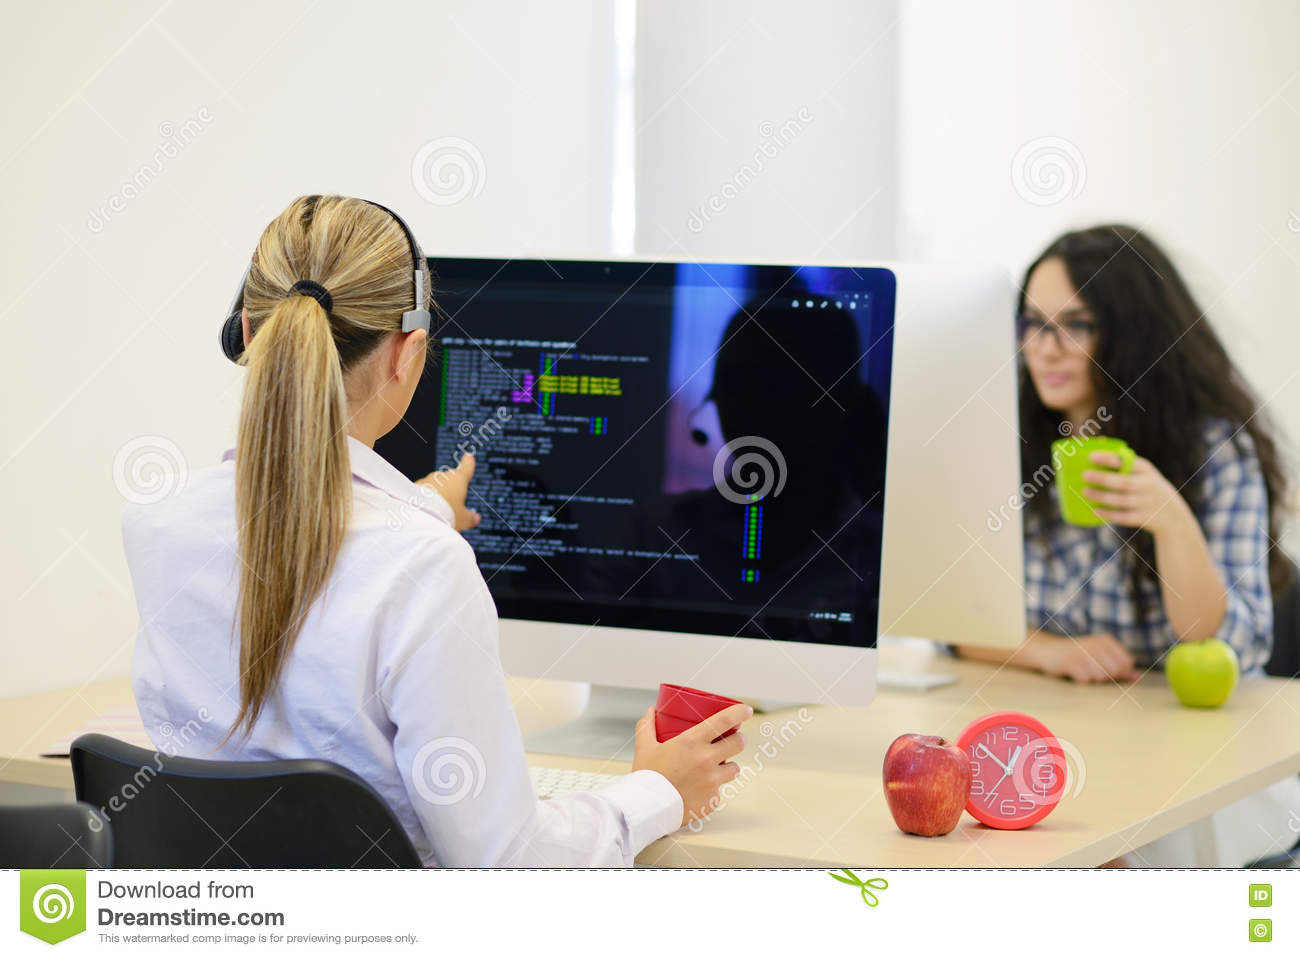 Startup business, young woman as software developer working on computer at modern office